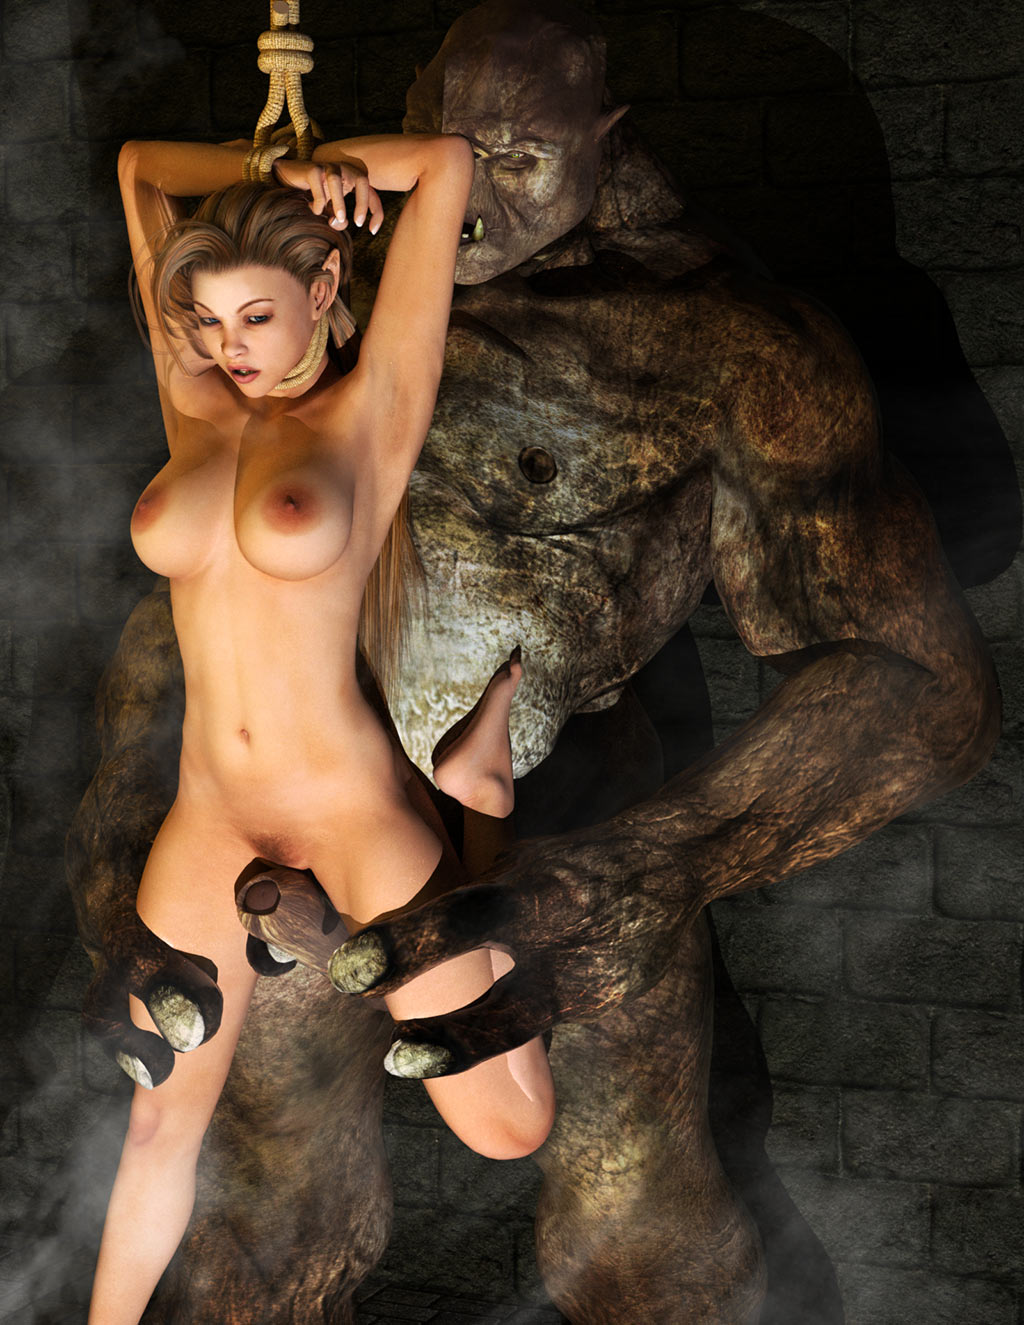 3D Bdsm Movies 3d monsters fucking hot girls, tenctacles porn